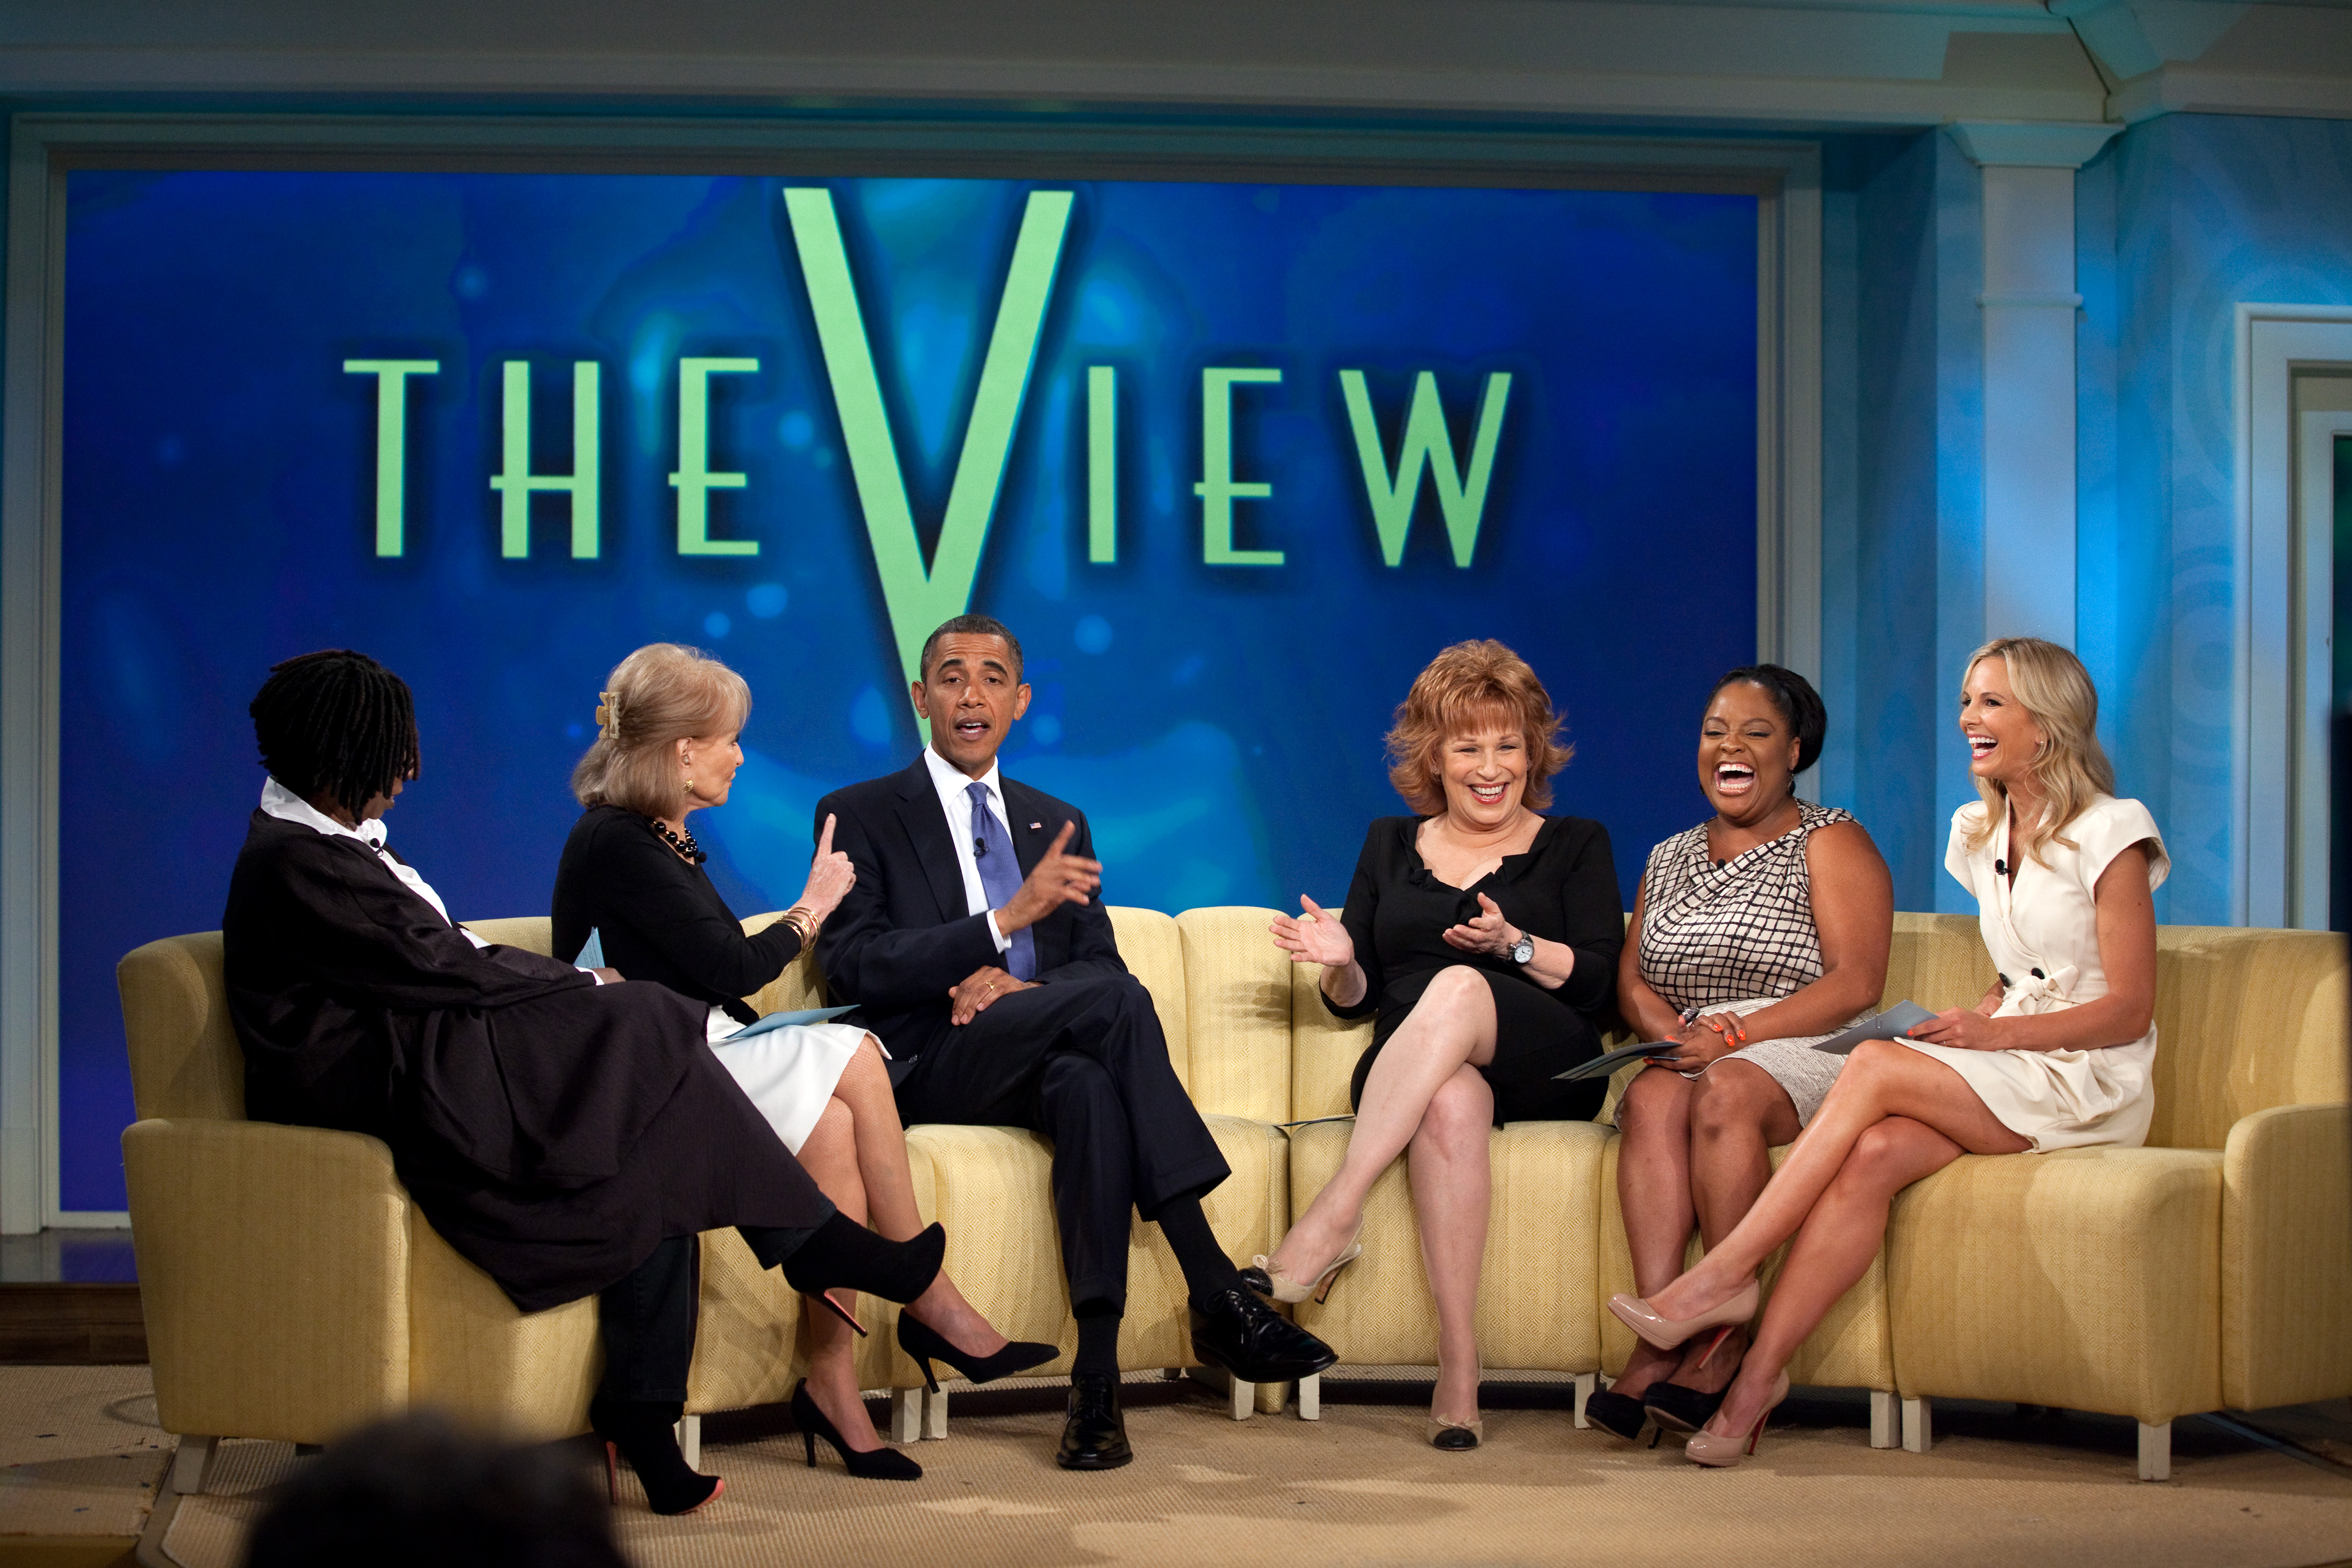 The View's panel (left–right Whoopi Goldberg, Barbara Walters, Joy Behar, Sherri Shepherd, and Elisabeth Hasselbeck) interview Barack Obama on July 29, 2010